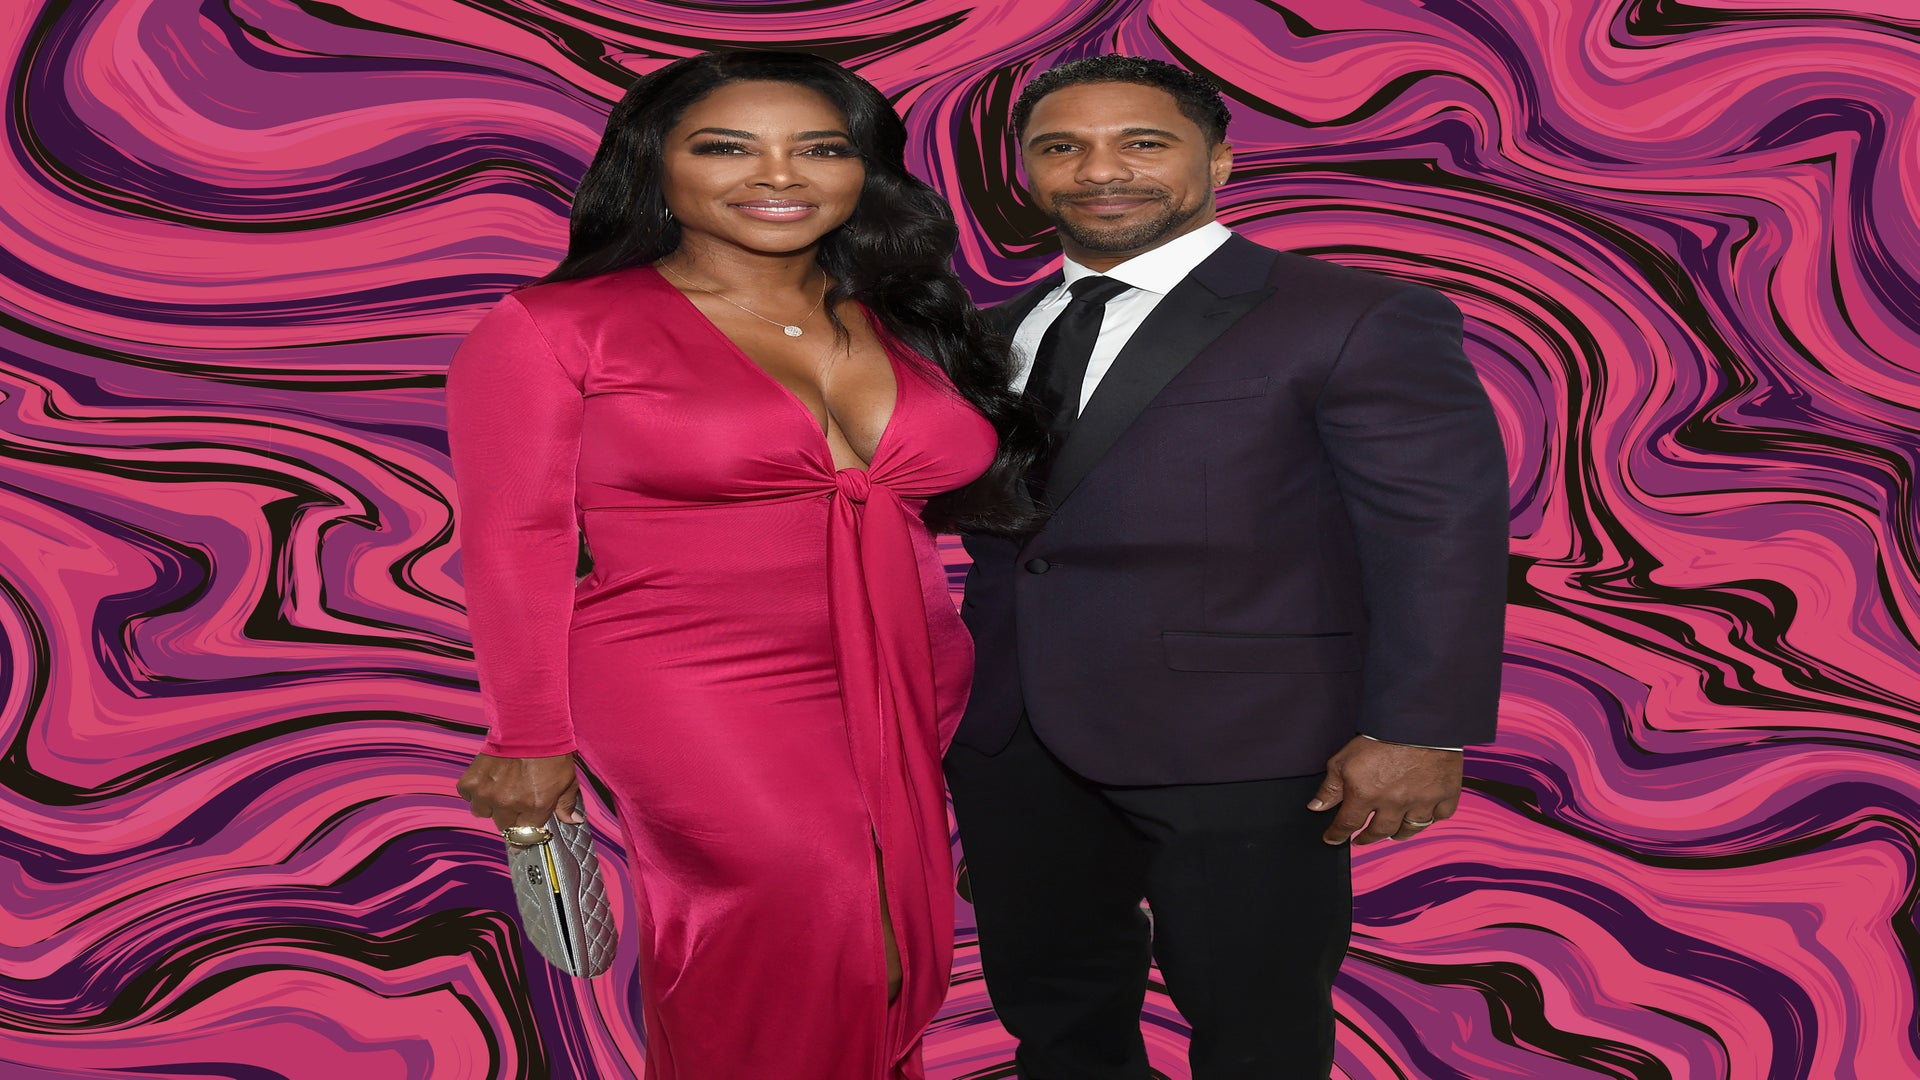 In Their First Joint Interview Kenya Moore and Husband Marc Daly Say It Was 'Love At First Sight'